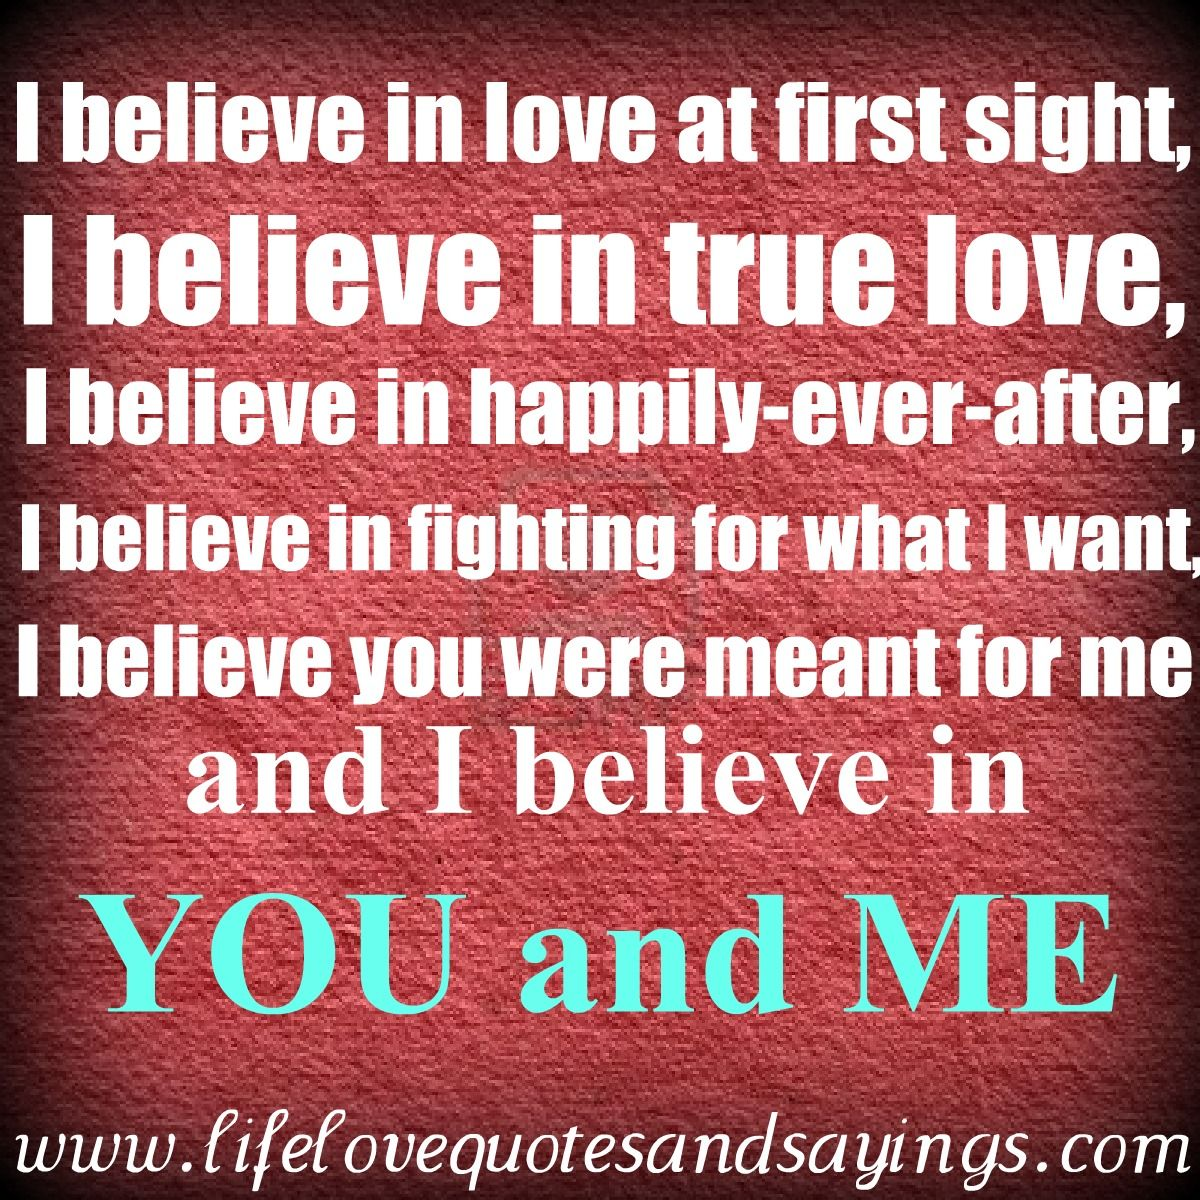 i am blessed to be spending my life my soul mate believe in i am blessed to be spending my life my soul mate believe in love